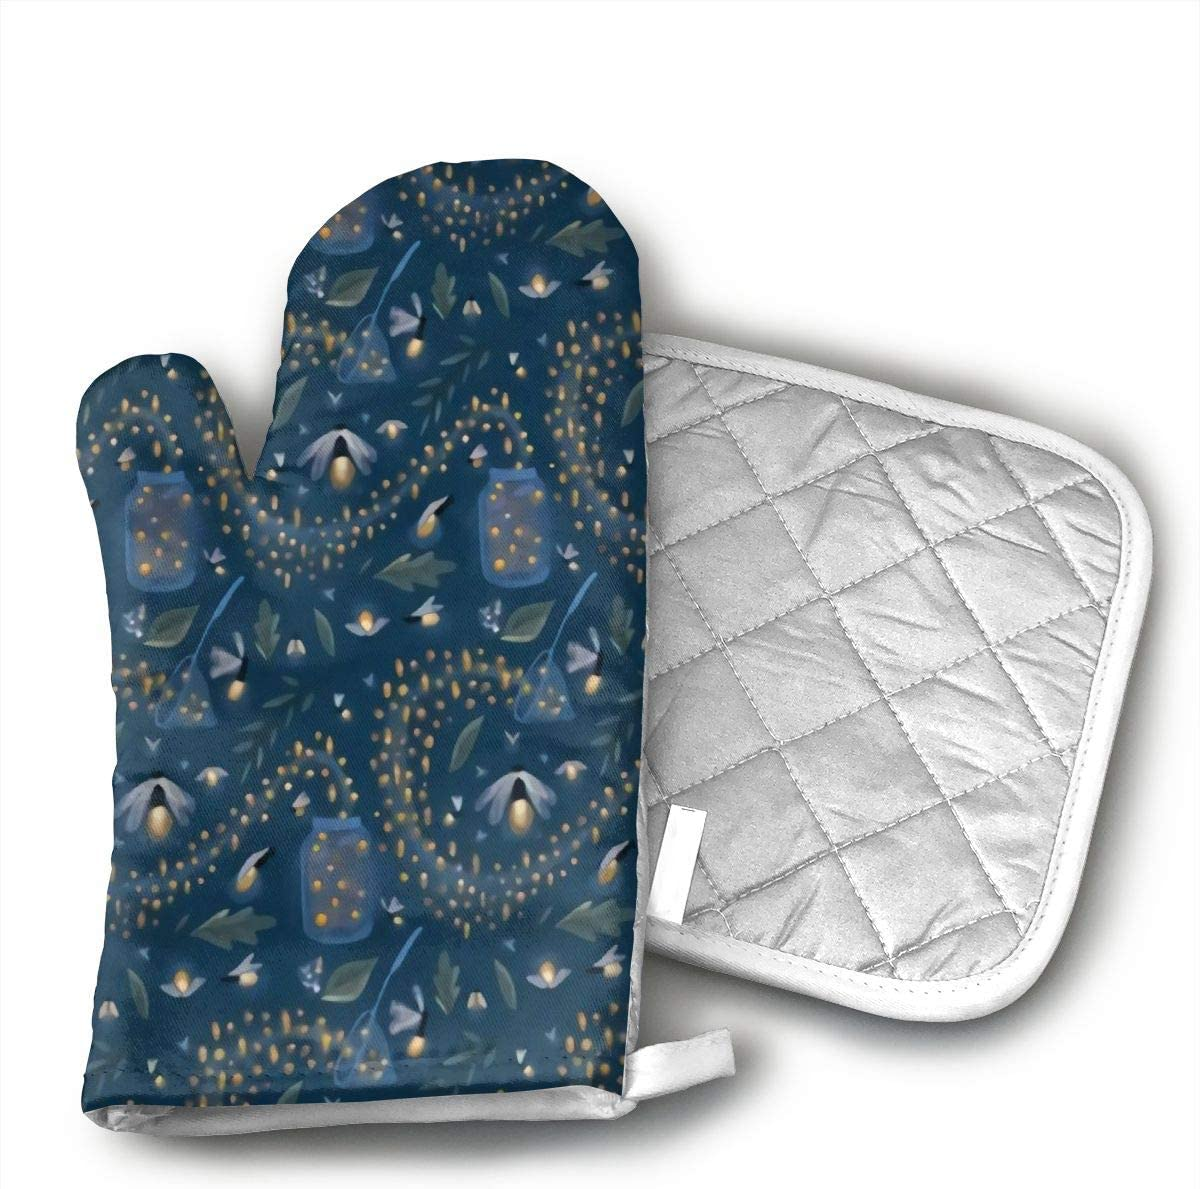 not Catching Fireflies Insulated Gloves Mats Non-Slip Surface Safety for Baking Cooking Grilling